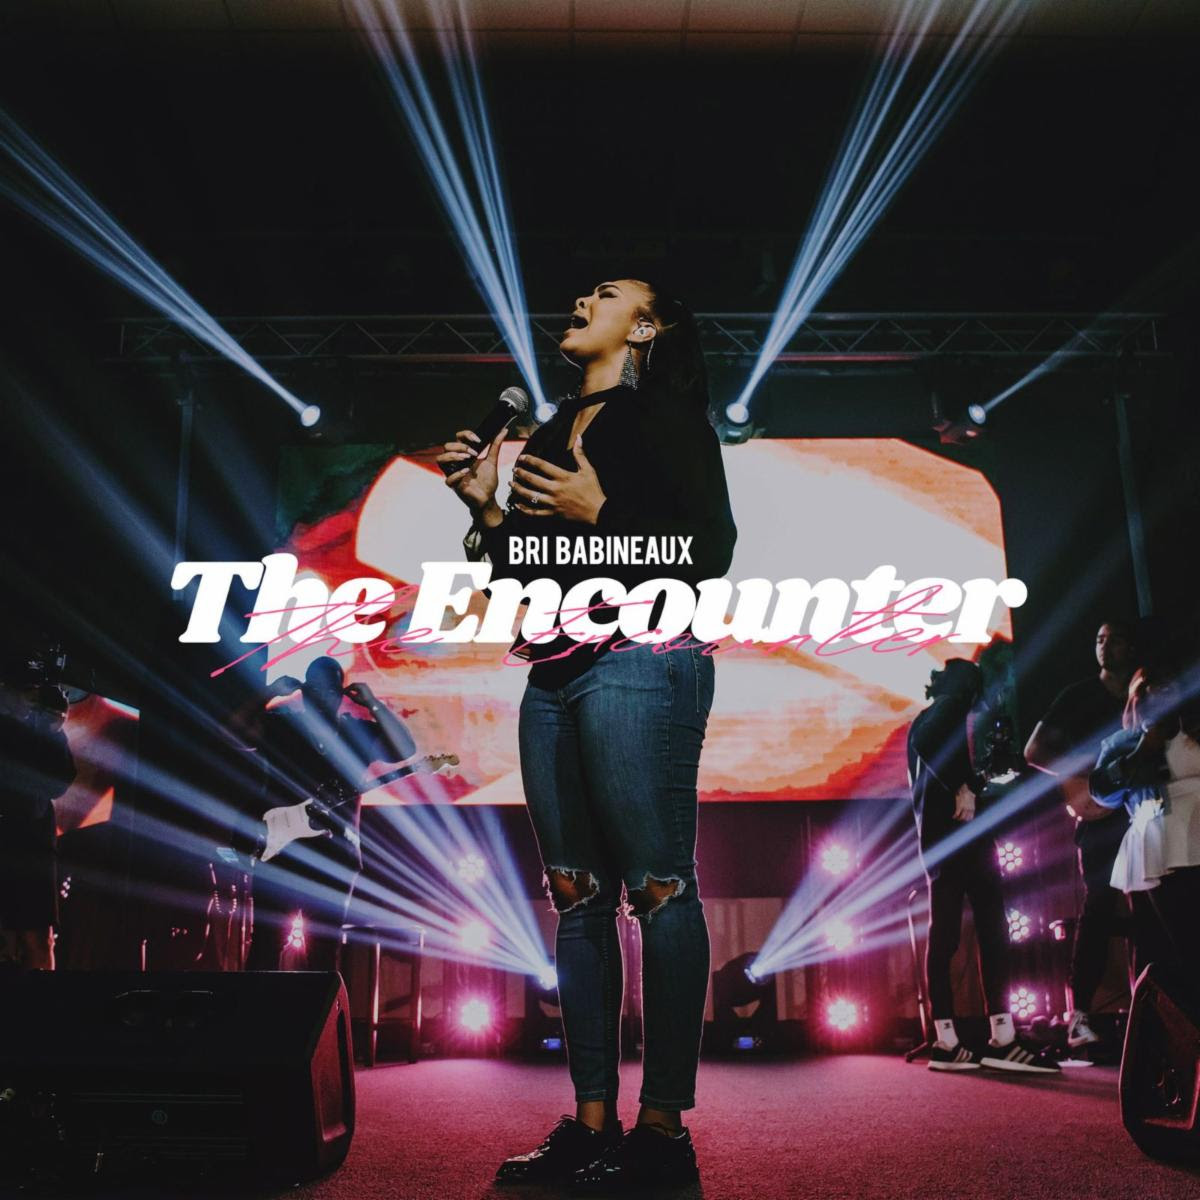 Bri Babineaux's 'The Encounter' Available Now